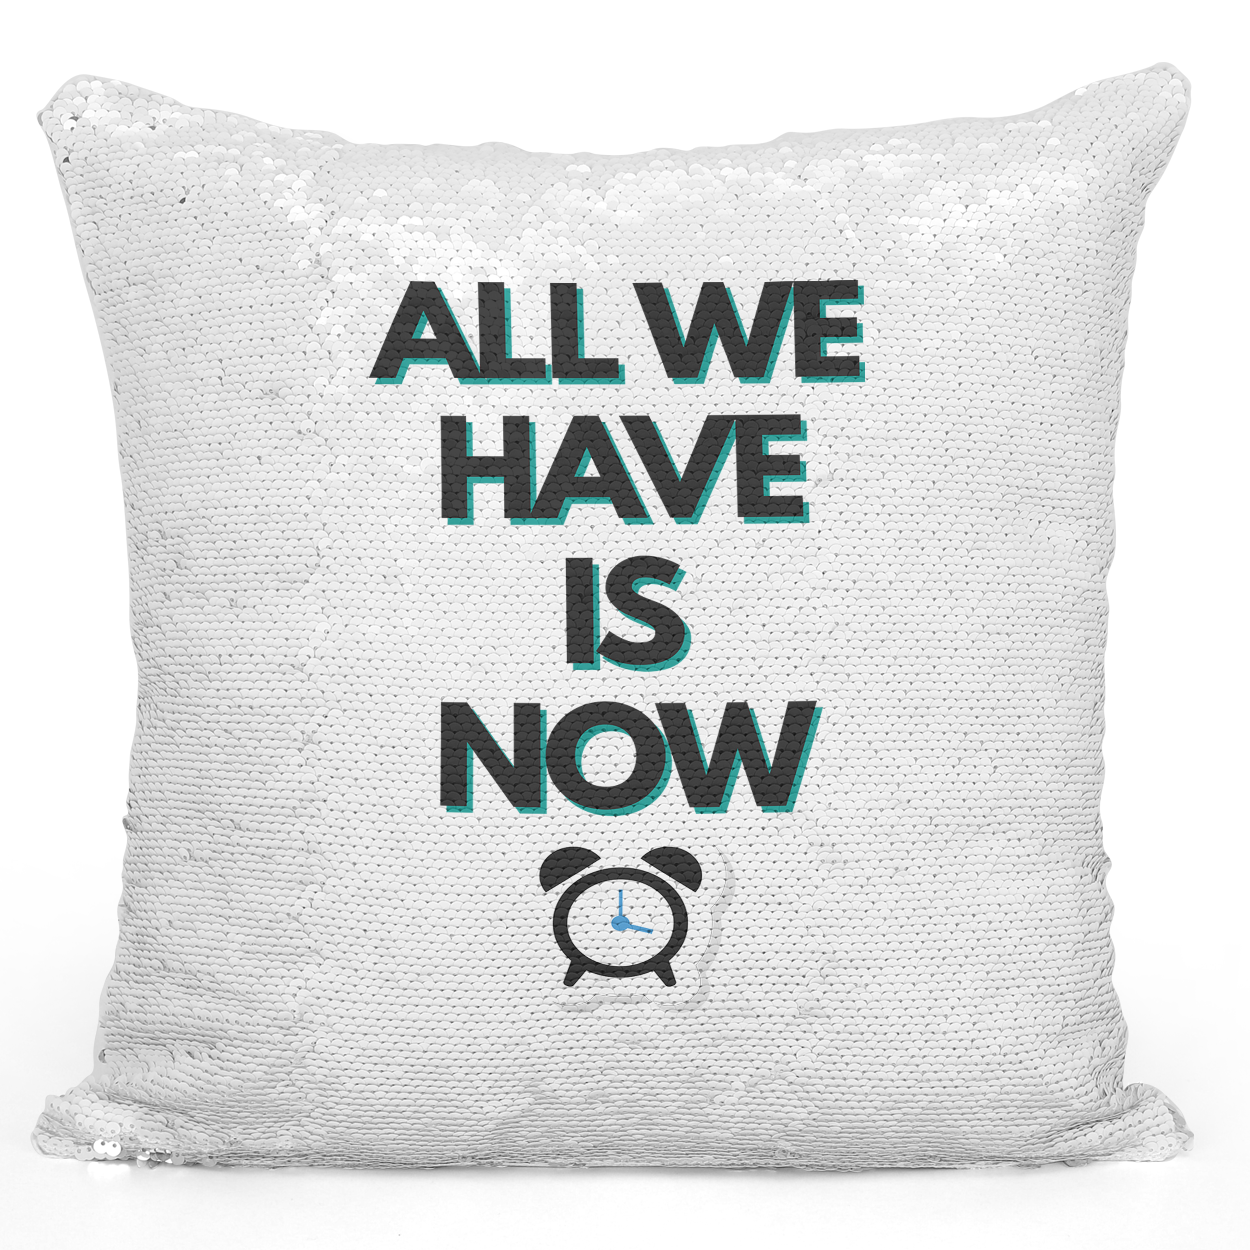 16x16 inch Sequin Throw Pillow Magic Flip Pillow All We Have Is Now Work Hard Pillow Loud Universe